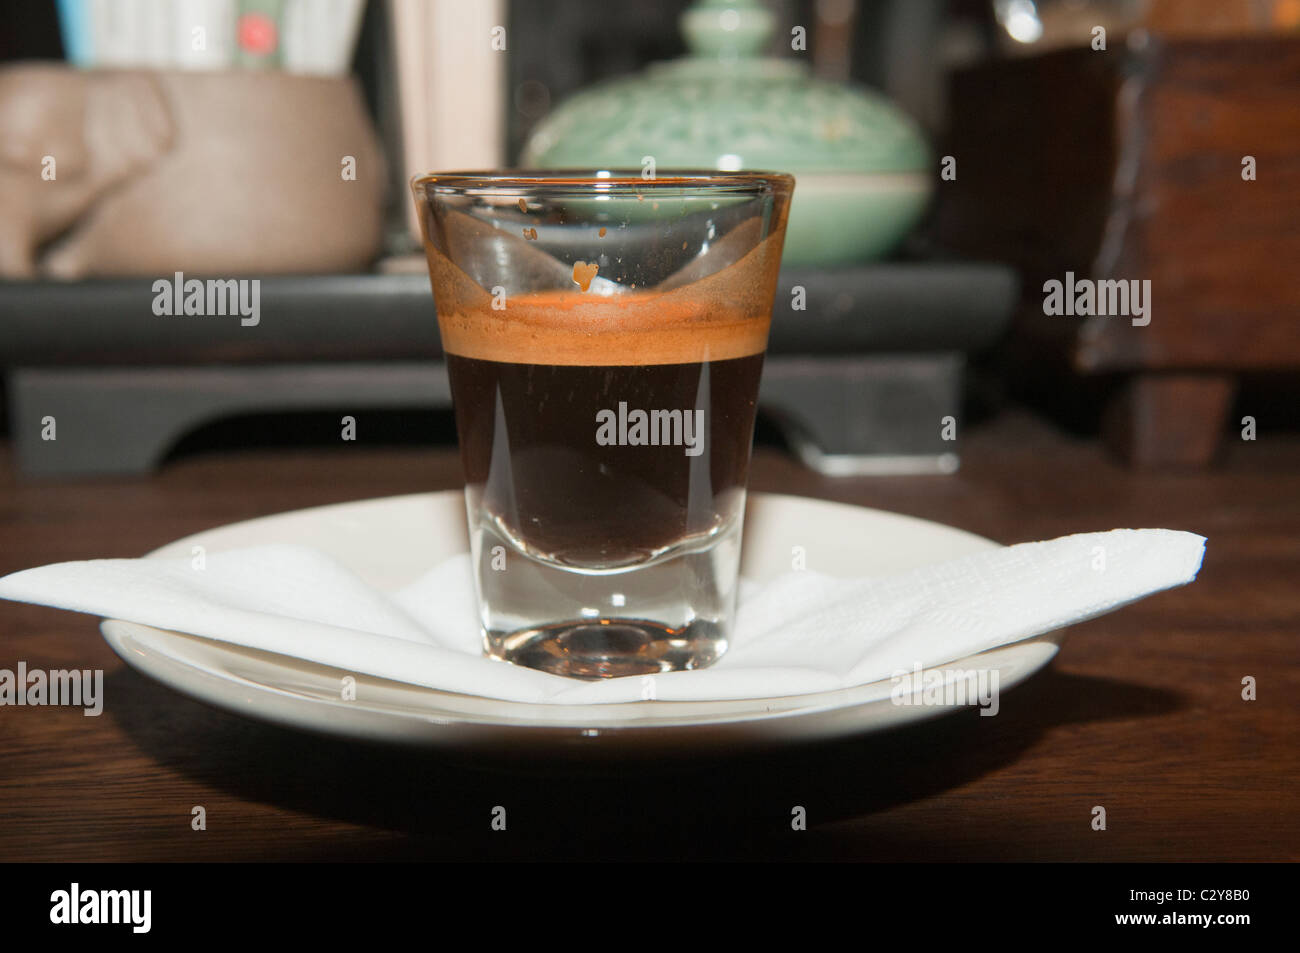 espresso coffee served in a cafe in Chiang Mai, Thailand - Stock Image